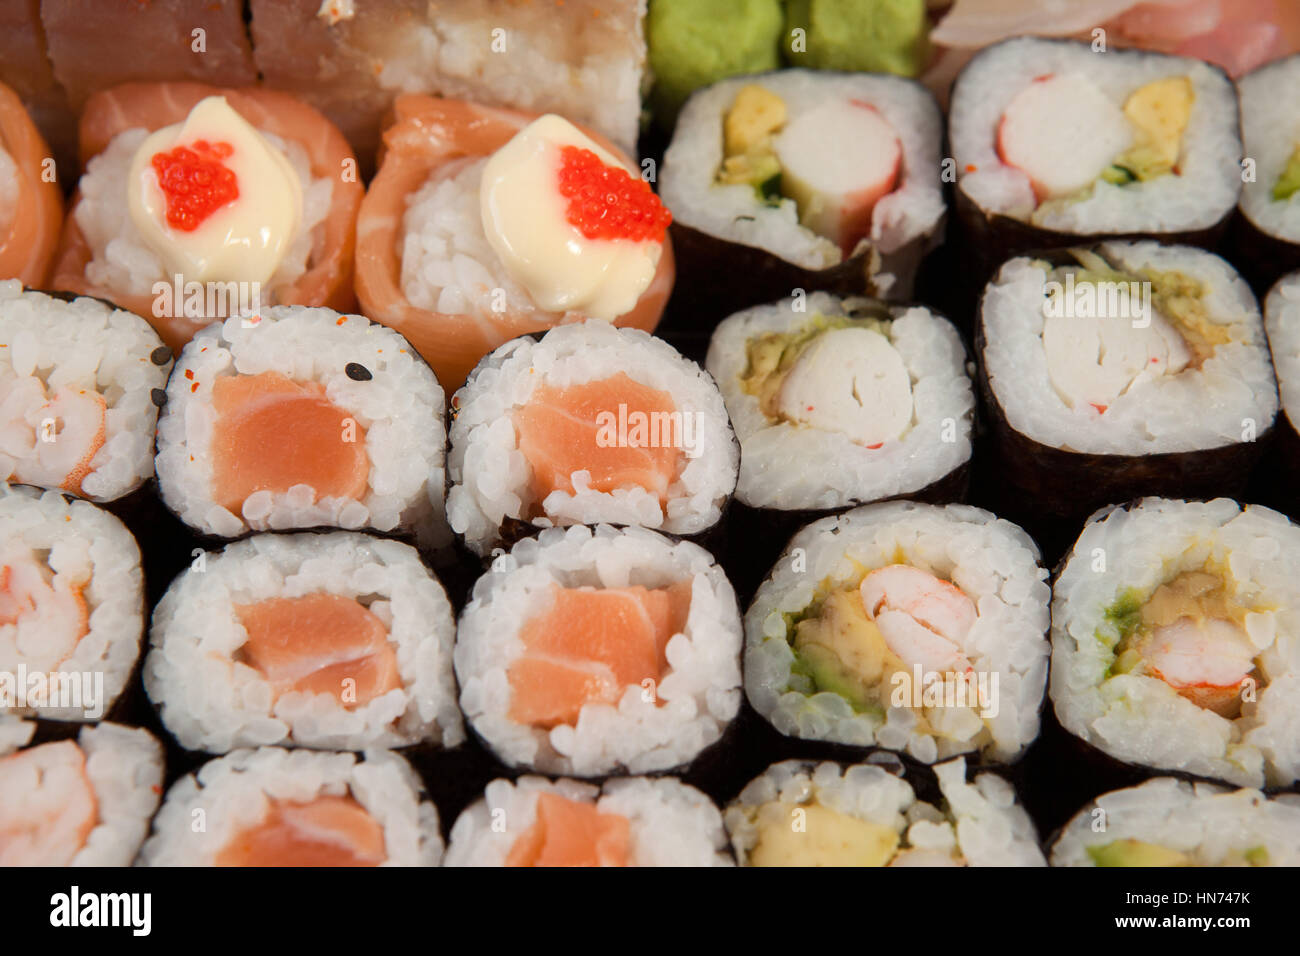 Close-up of set of assorted sushi kept in a black box - Stock Image